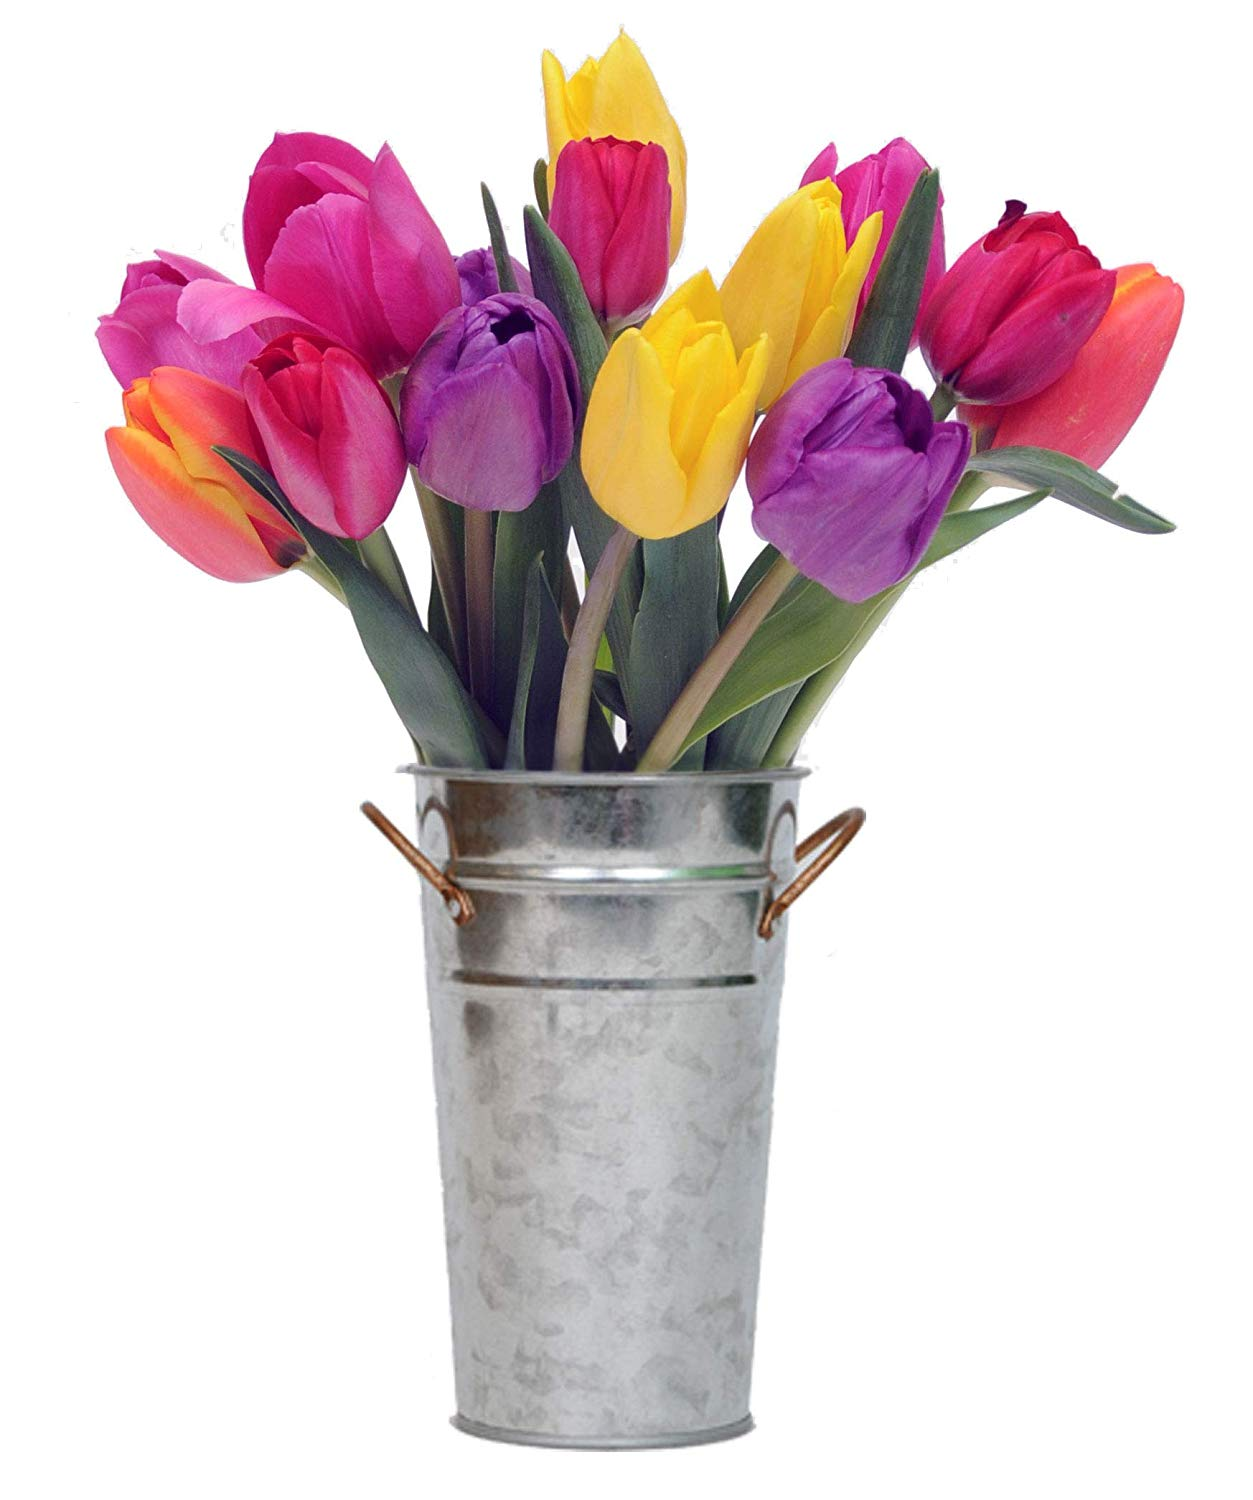 Confetti Bouquet - Colorful Fresh Tulips With Vase - California Grown